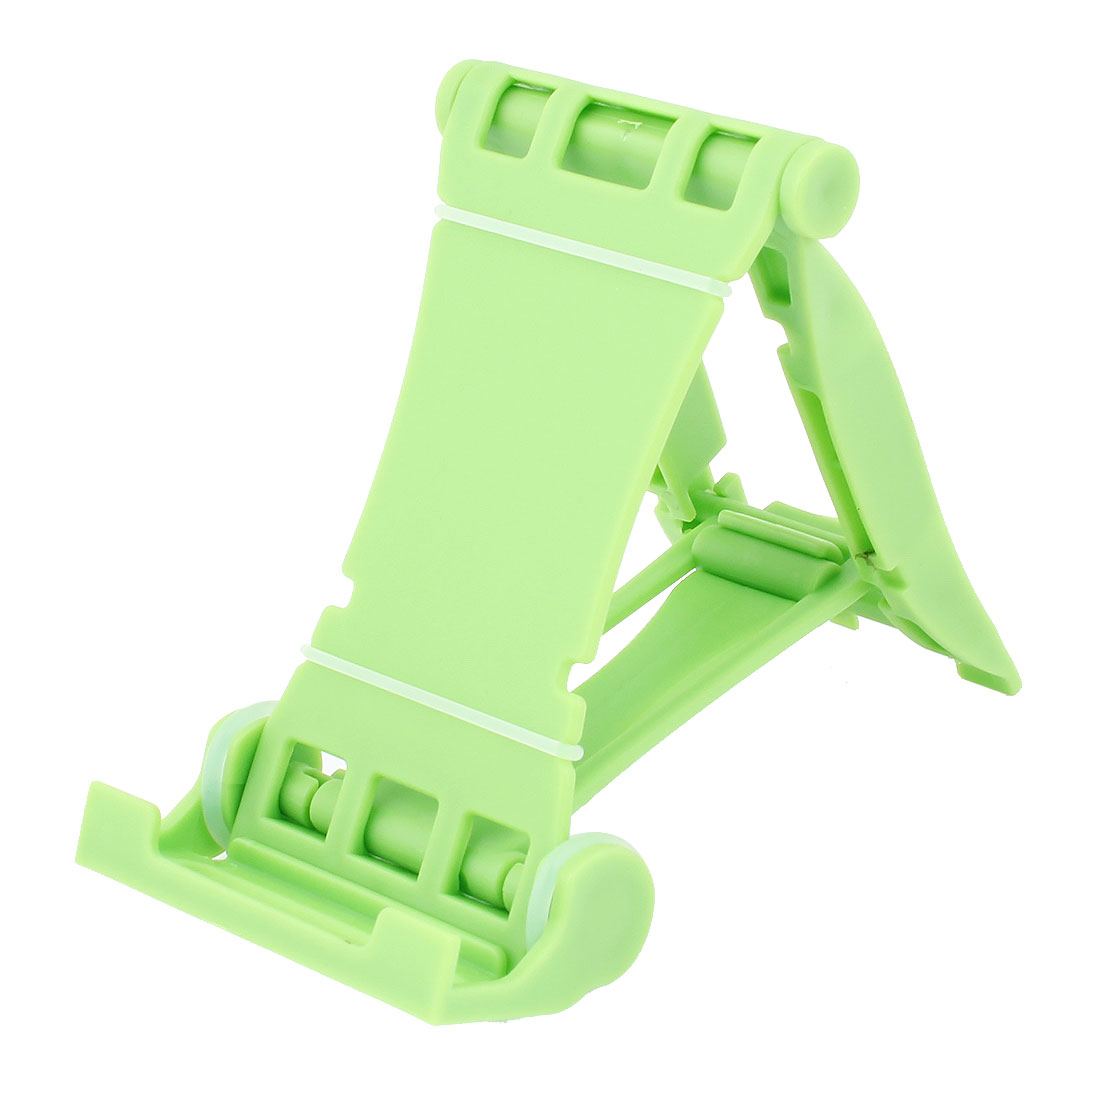 Green Plastic Folding Cell Phone iPhone Stand Holder for Auto